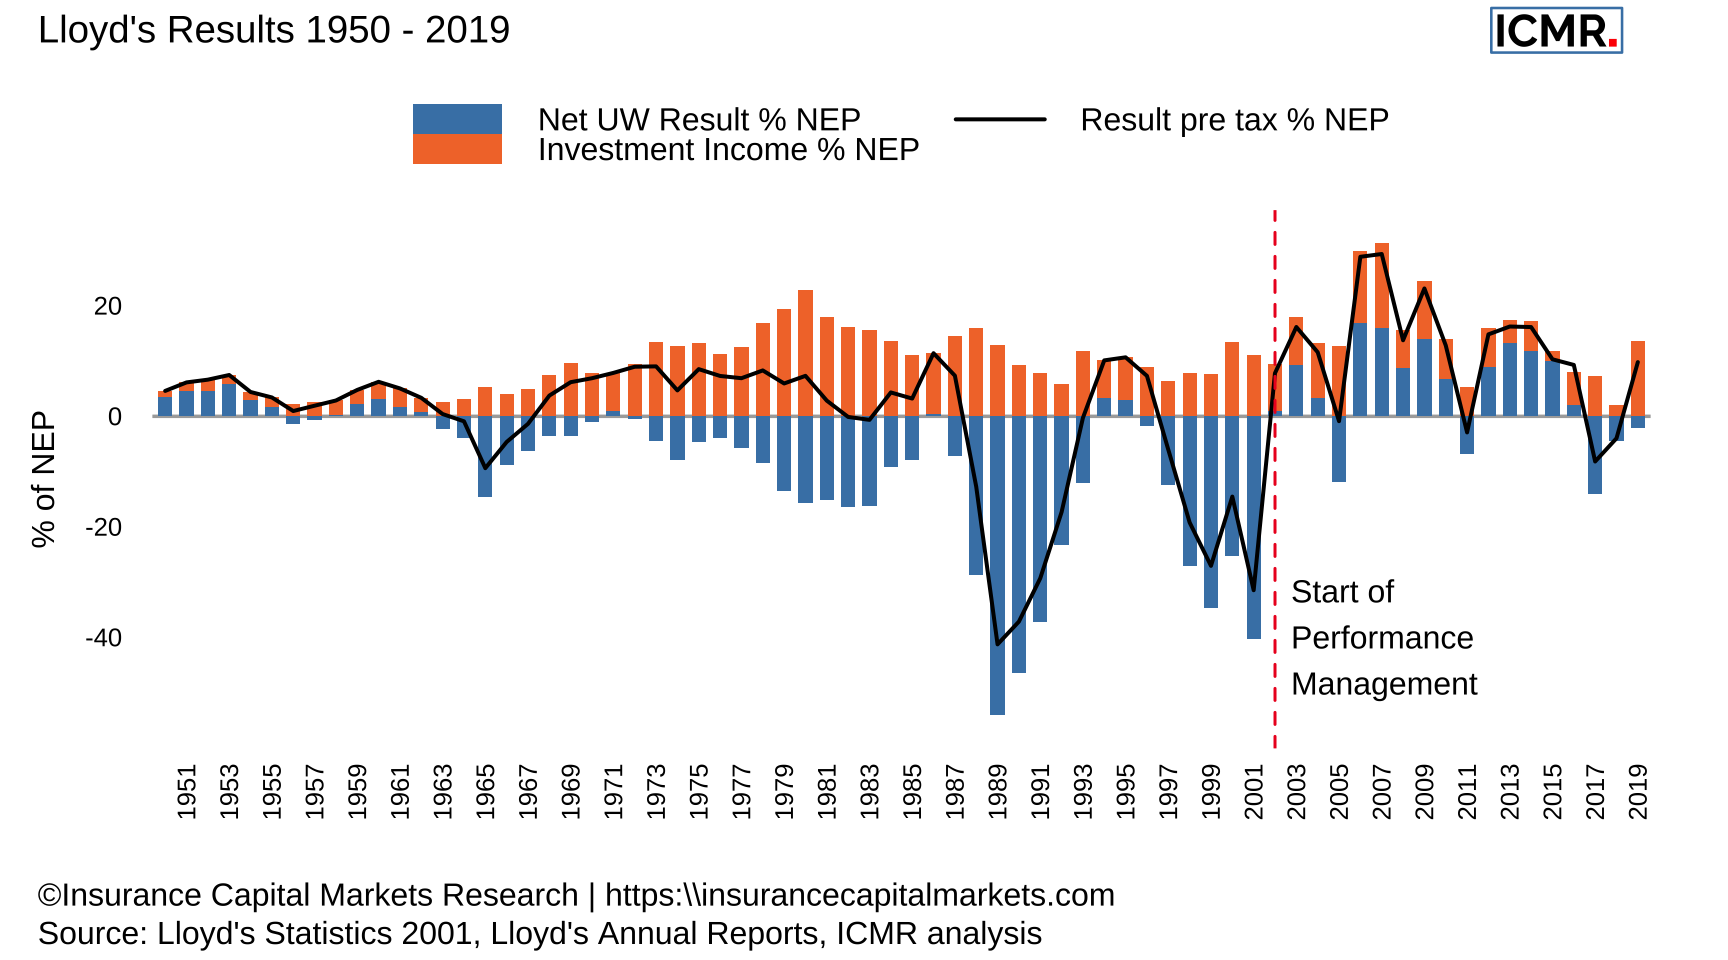 Lloyd's underwriting and investment results as a ratio of net earned premium (NEP) from 1950 - 2019